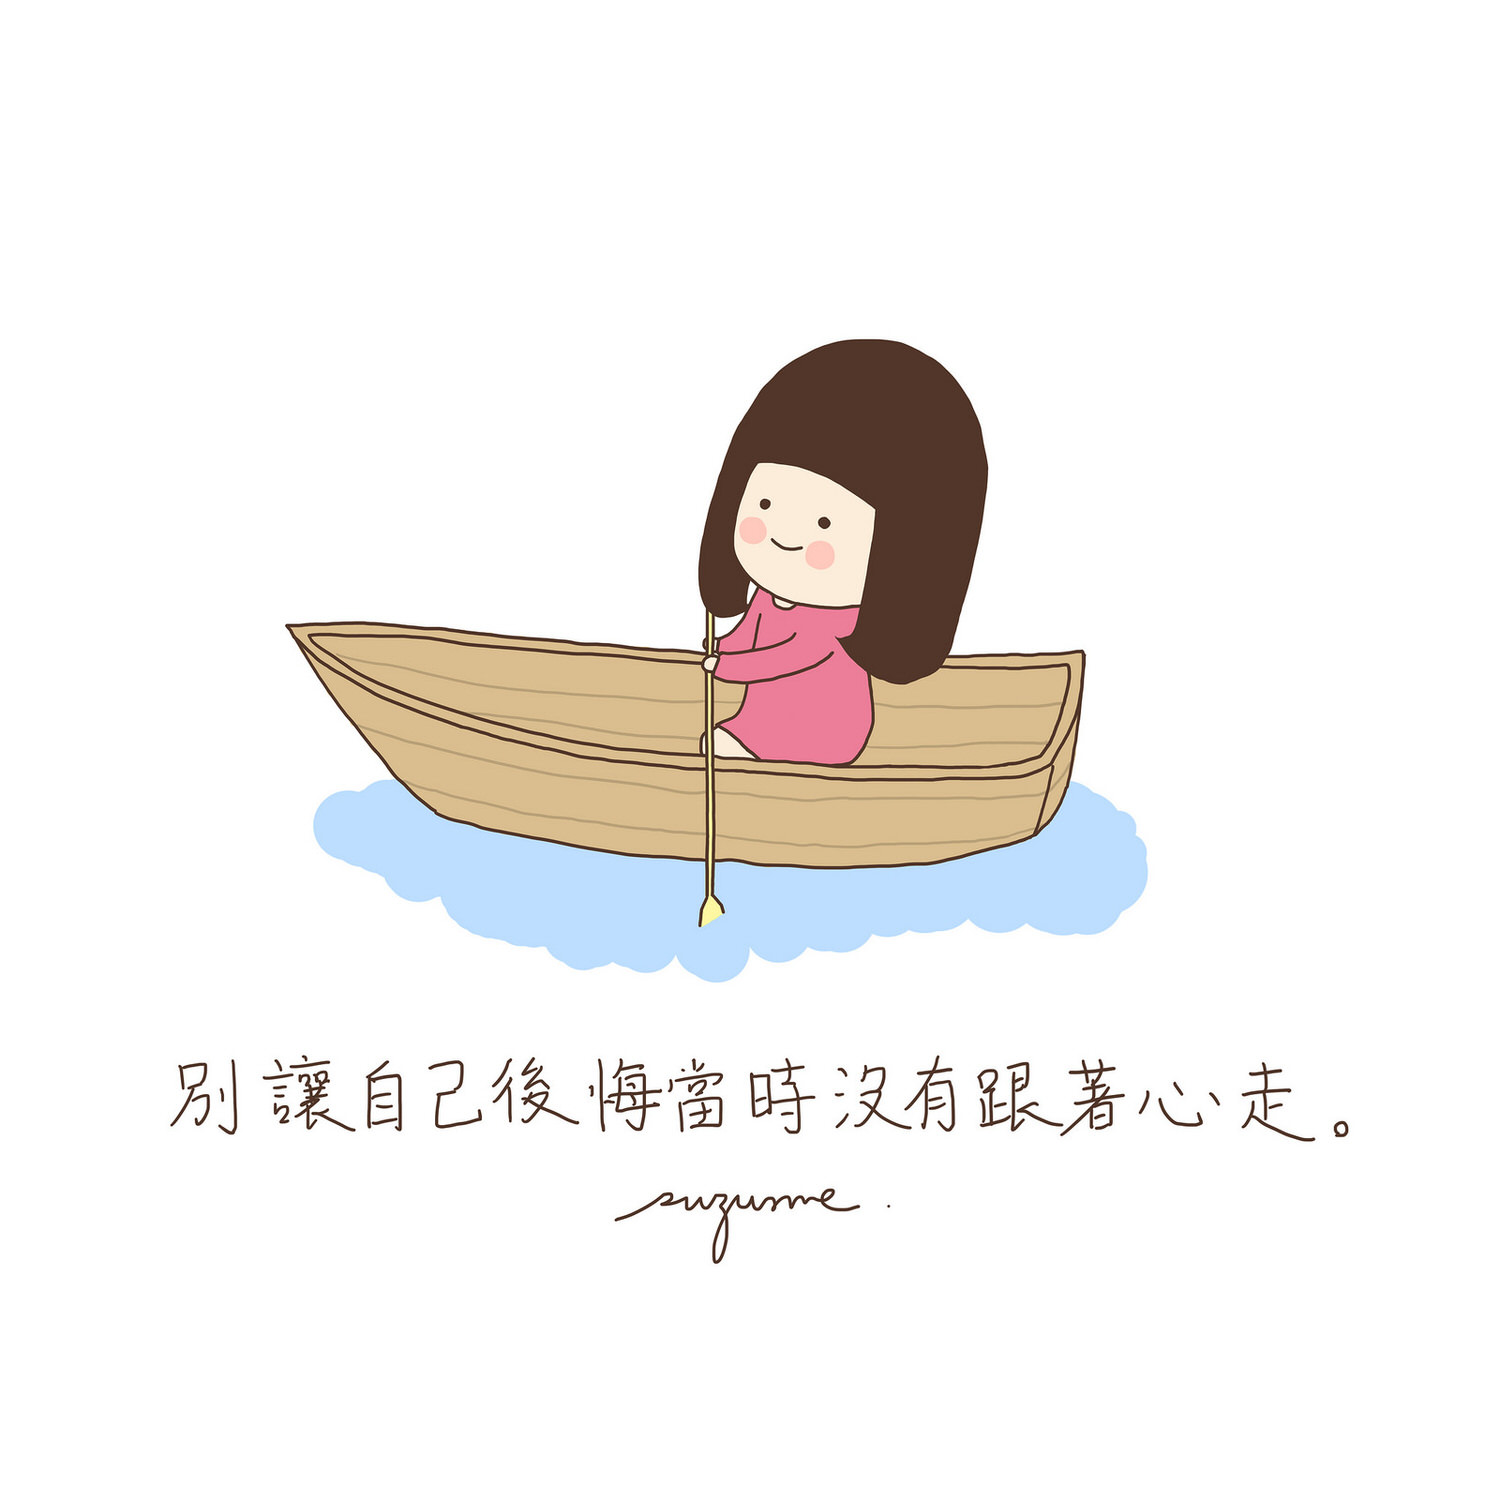 illustrated by suzume